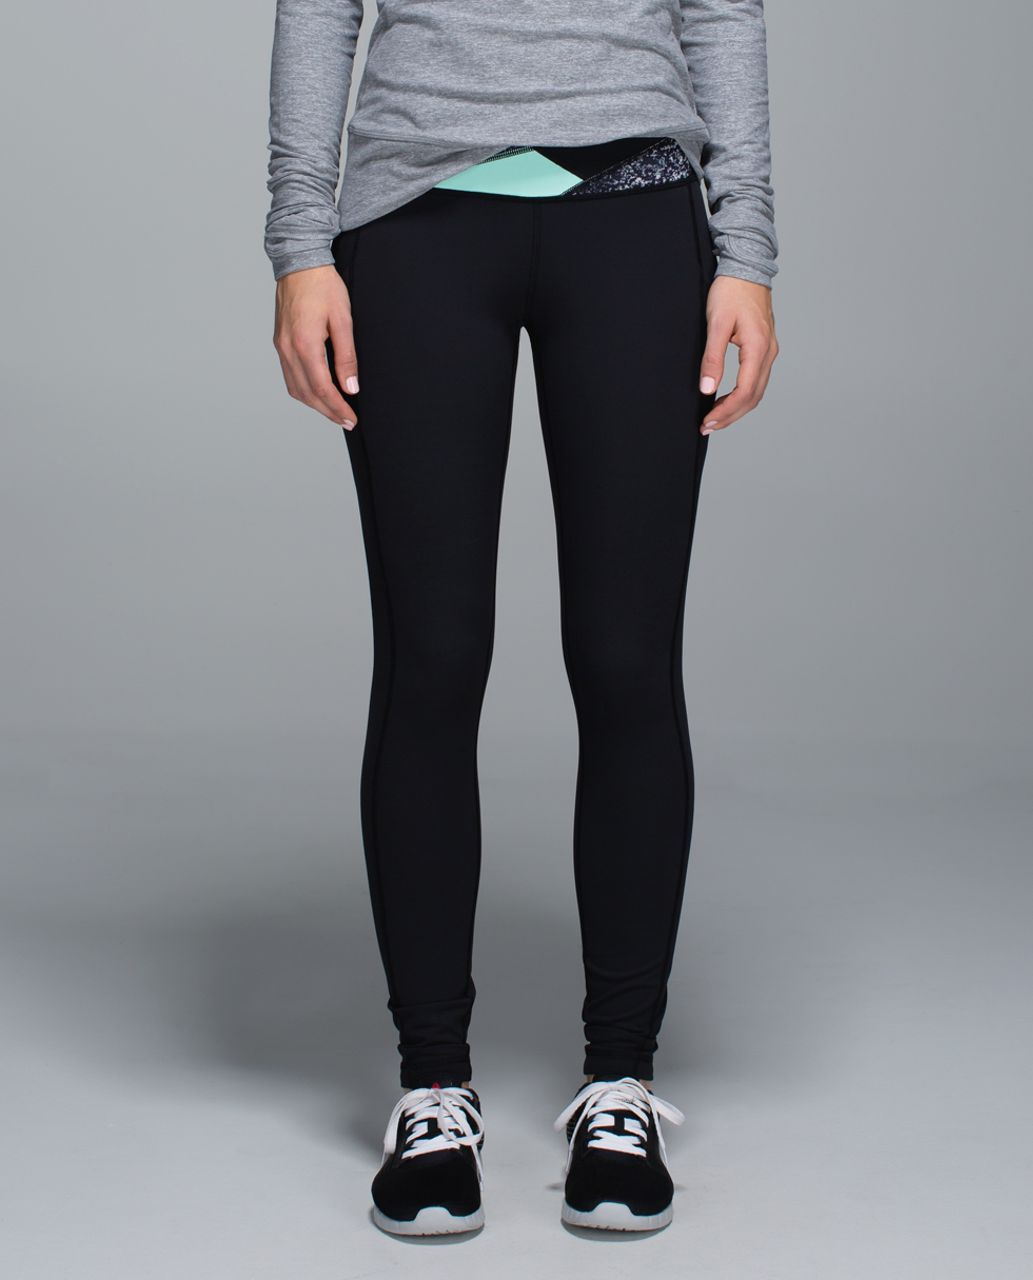 Lululemon Speed Tight ll *Full-On Luxtreme (Brushed) - Black / Fa14 Quilt 29